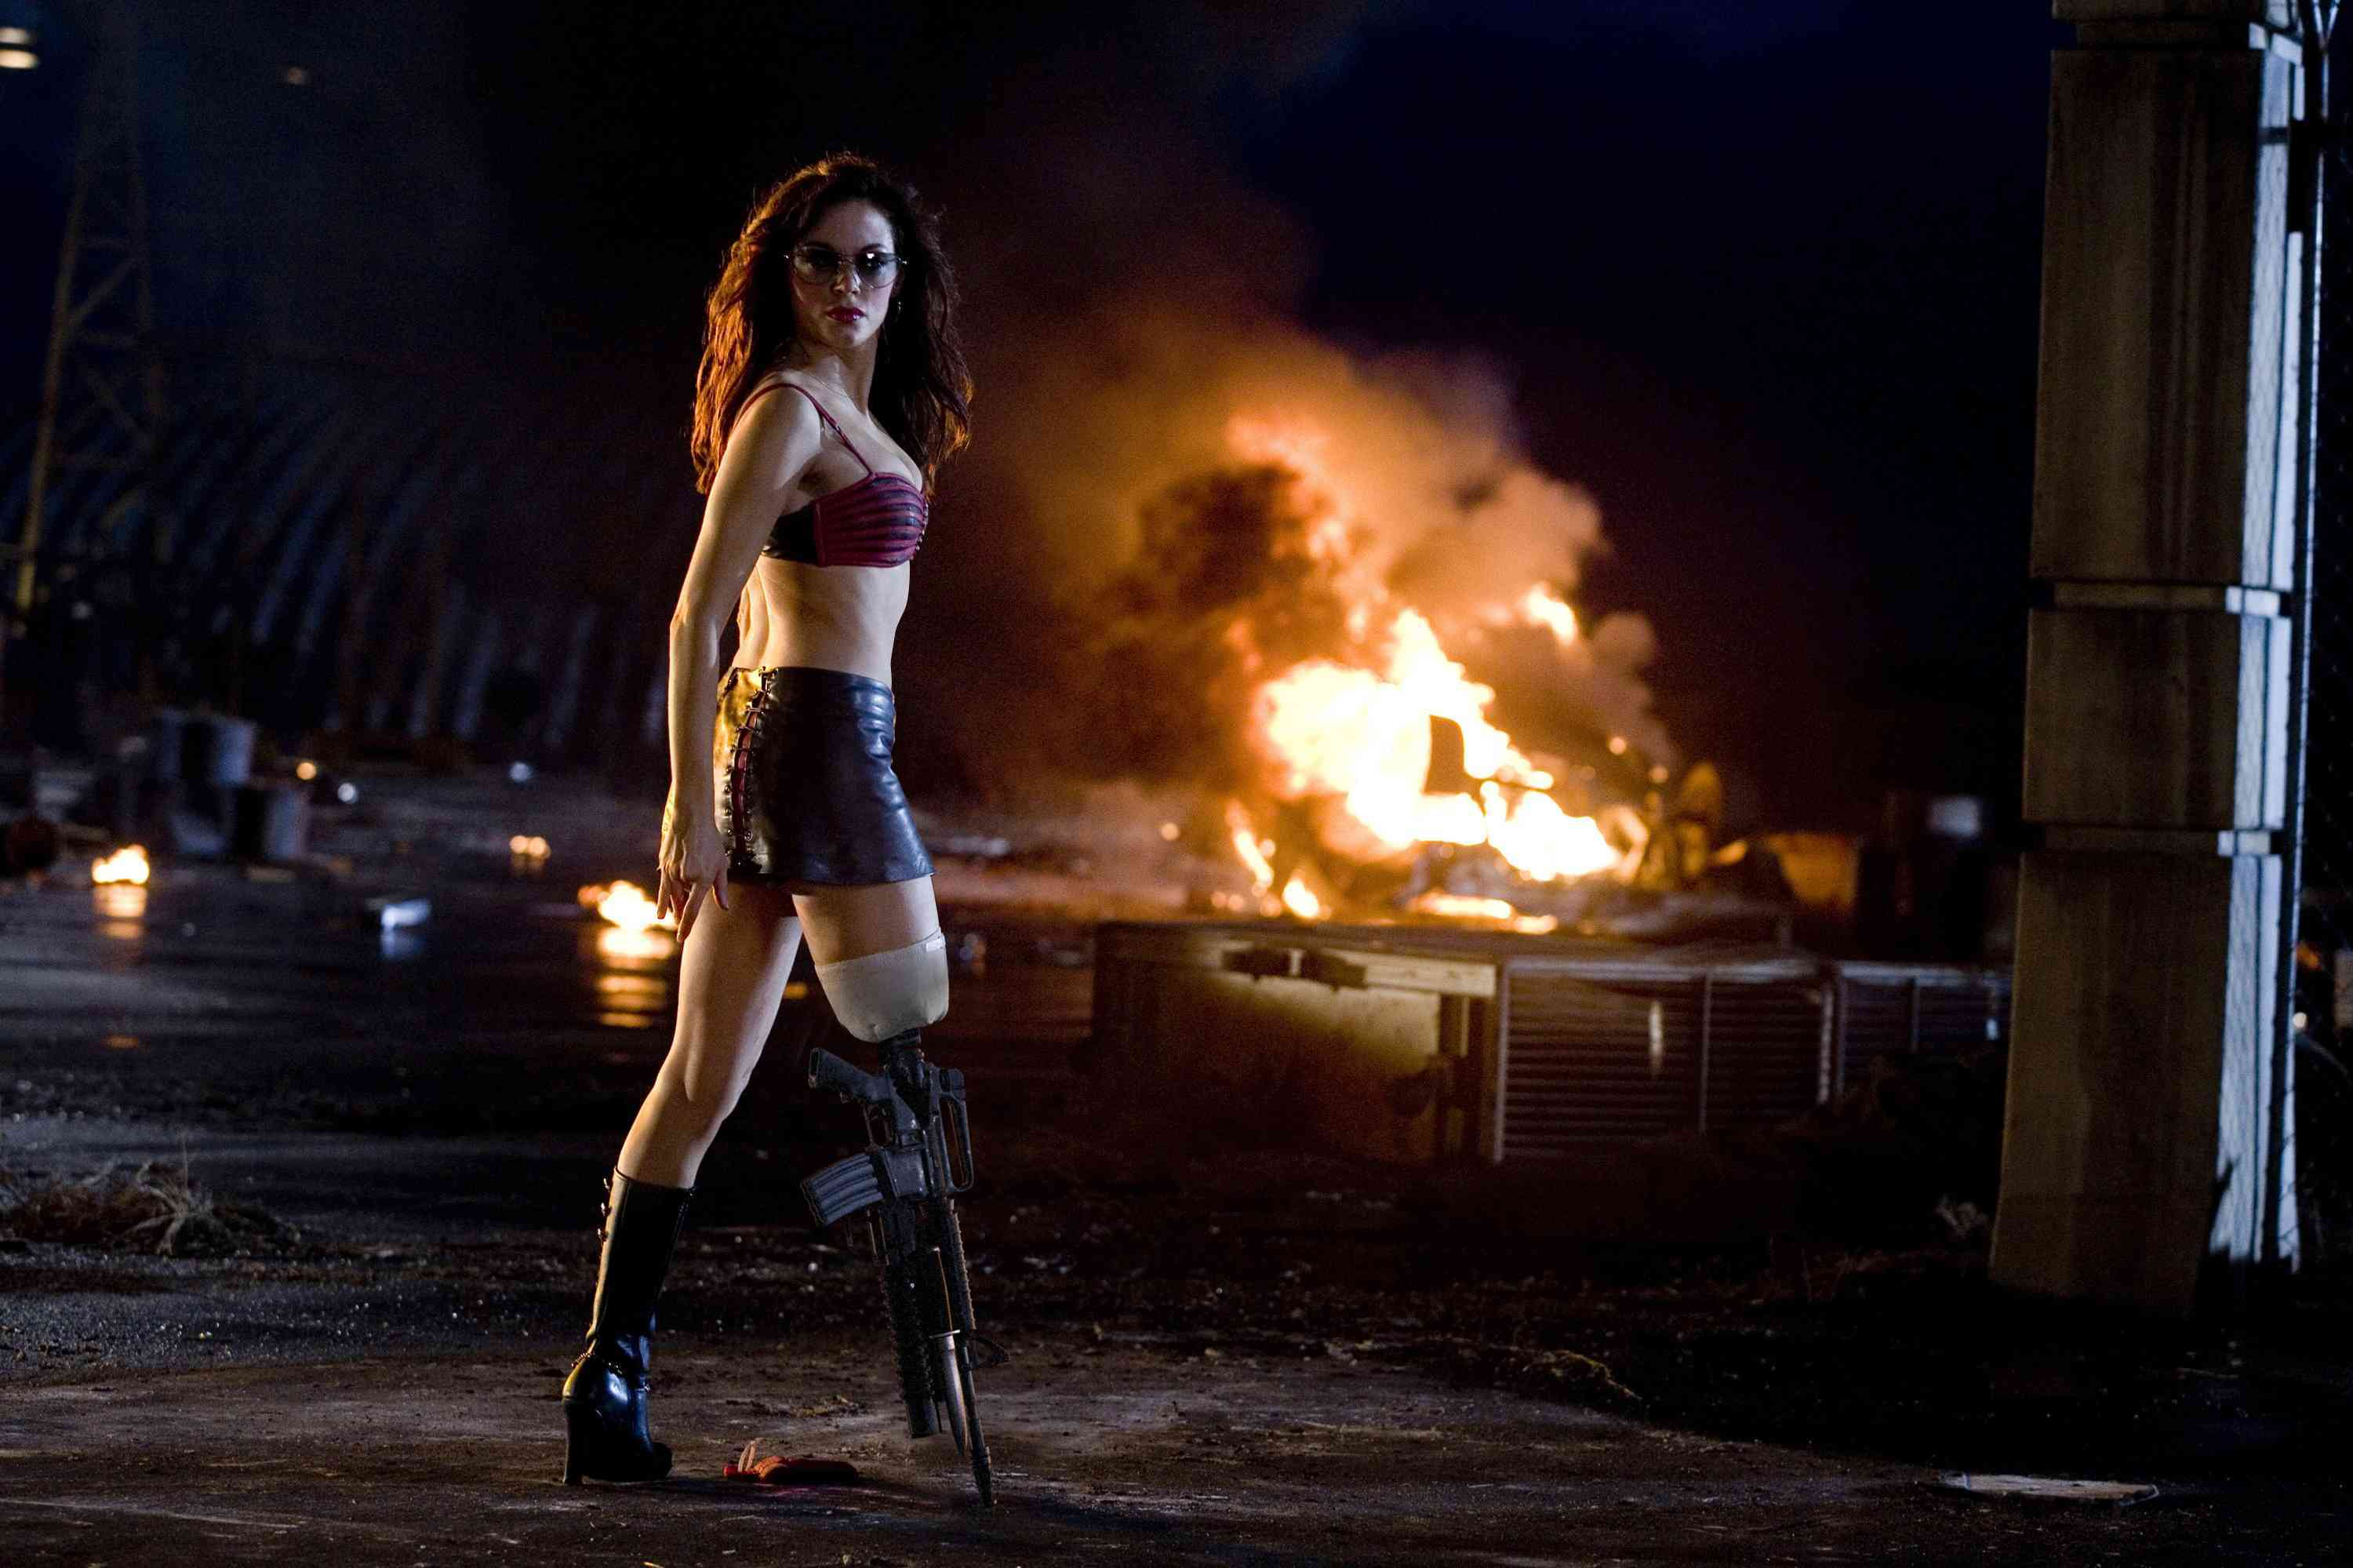 planet terror Grindhouse Space HD Wallpaper